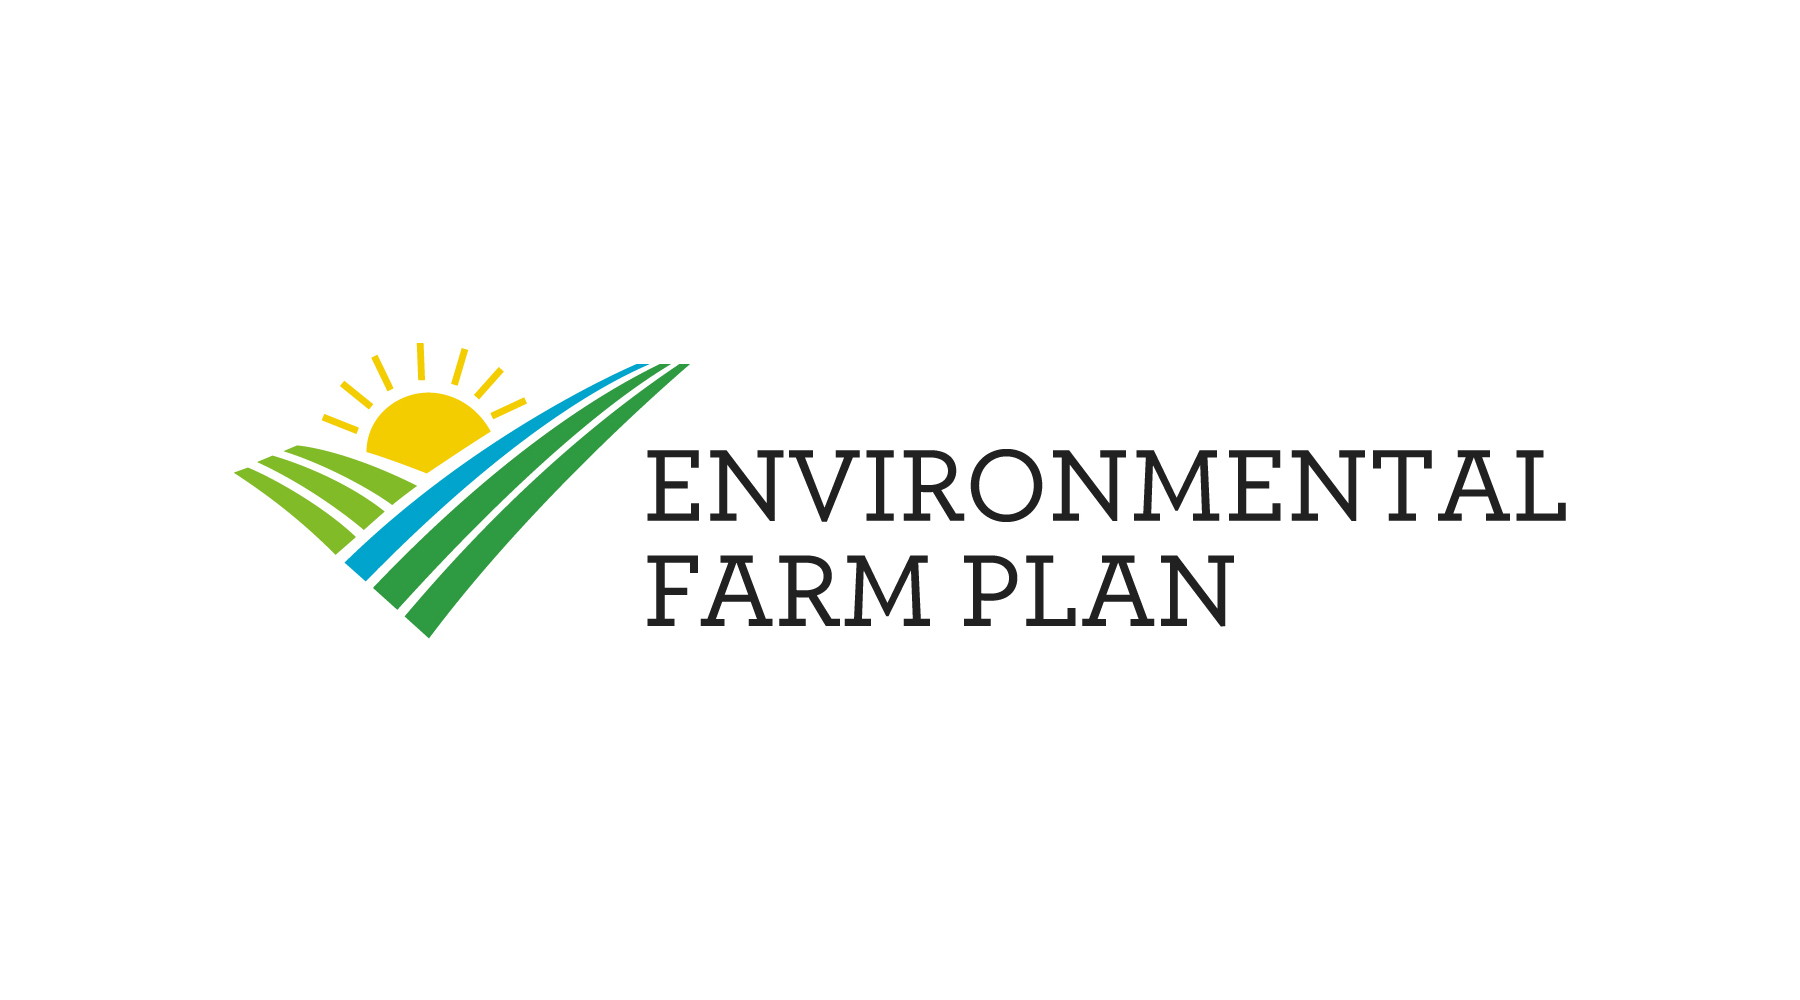 Environmental Farm Plan